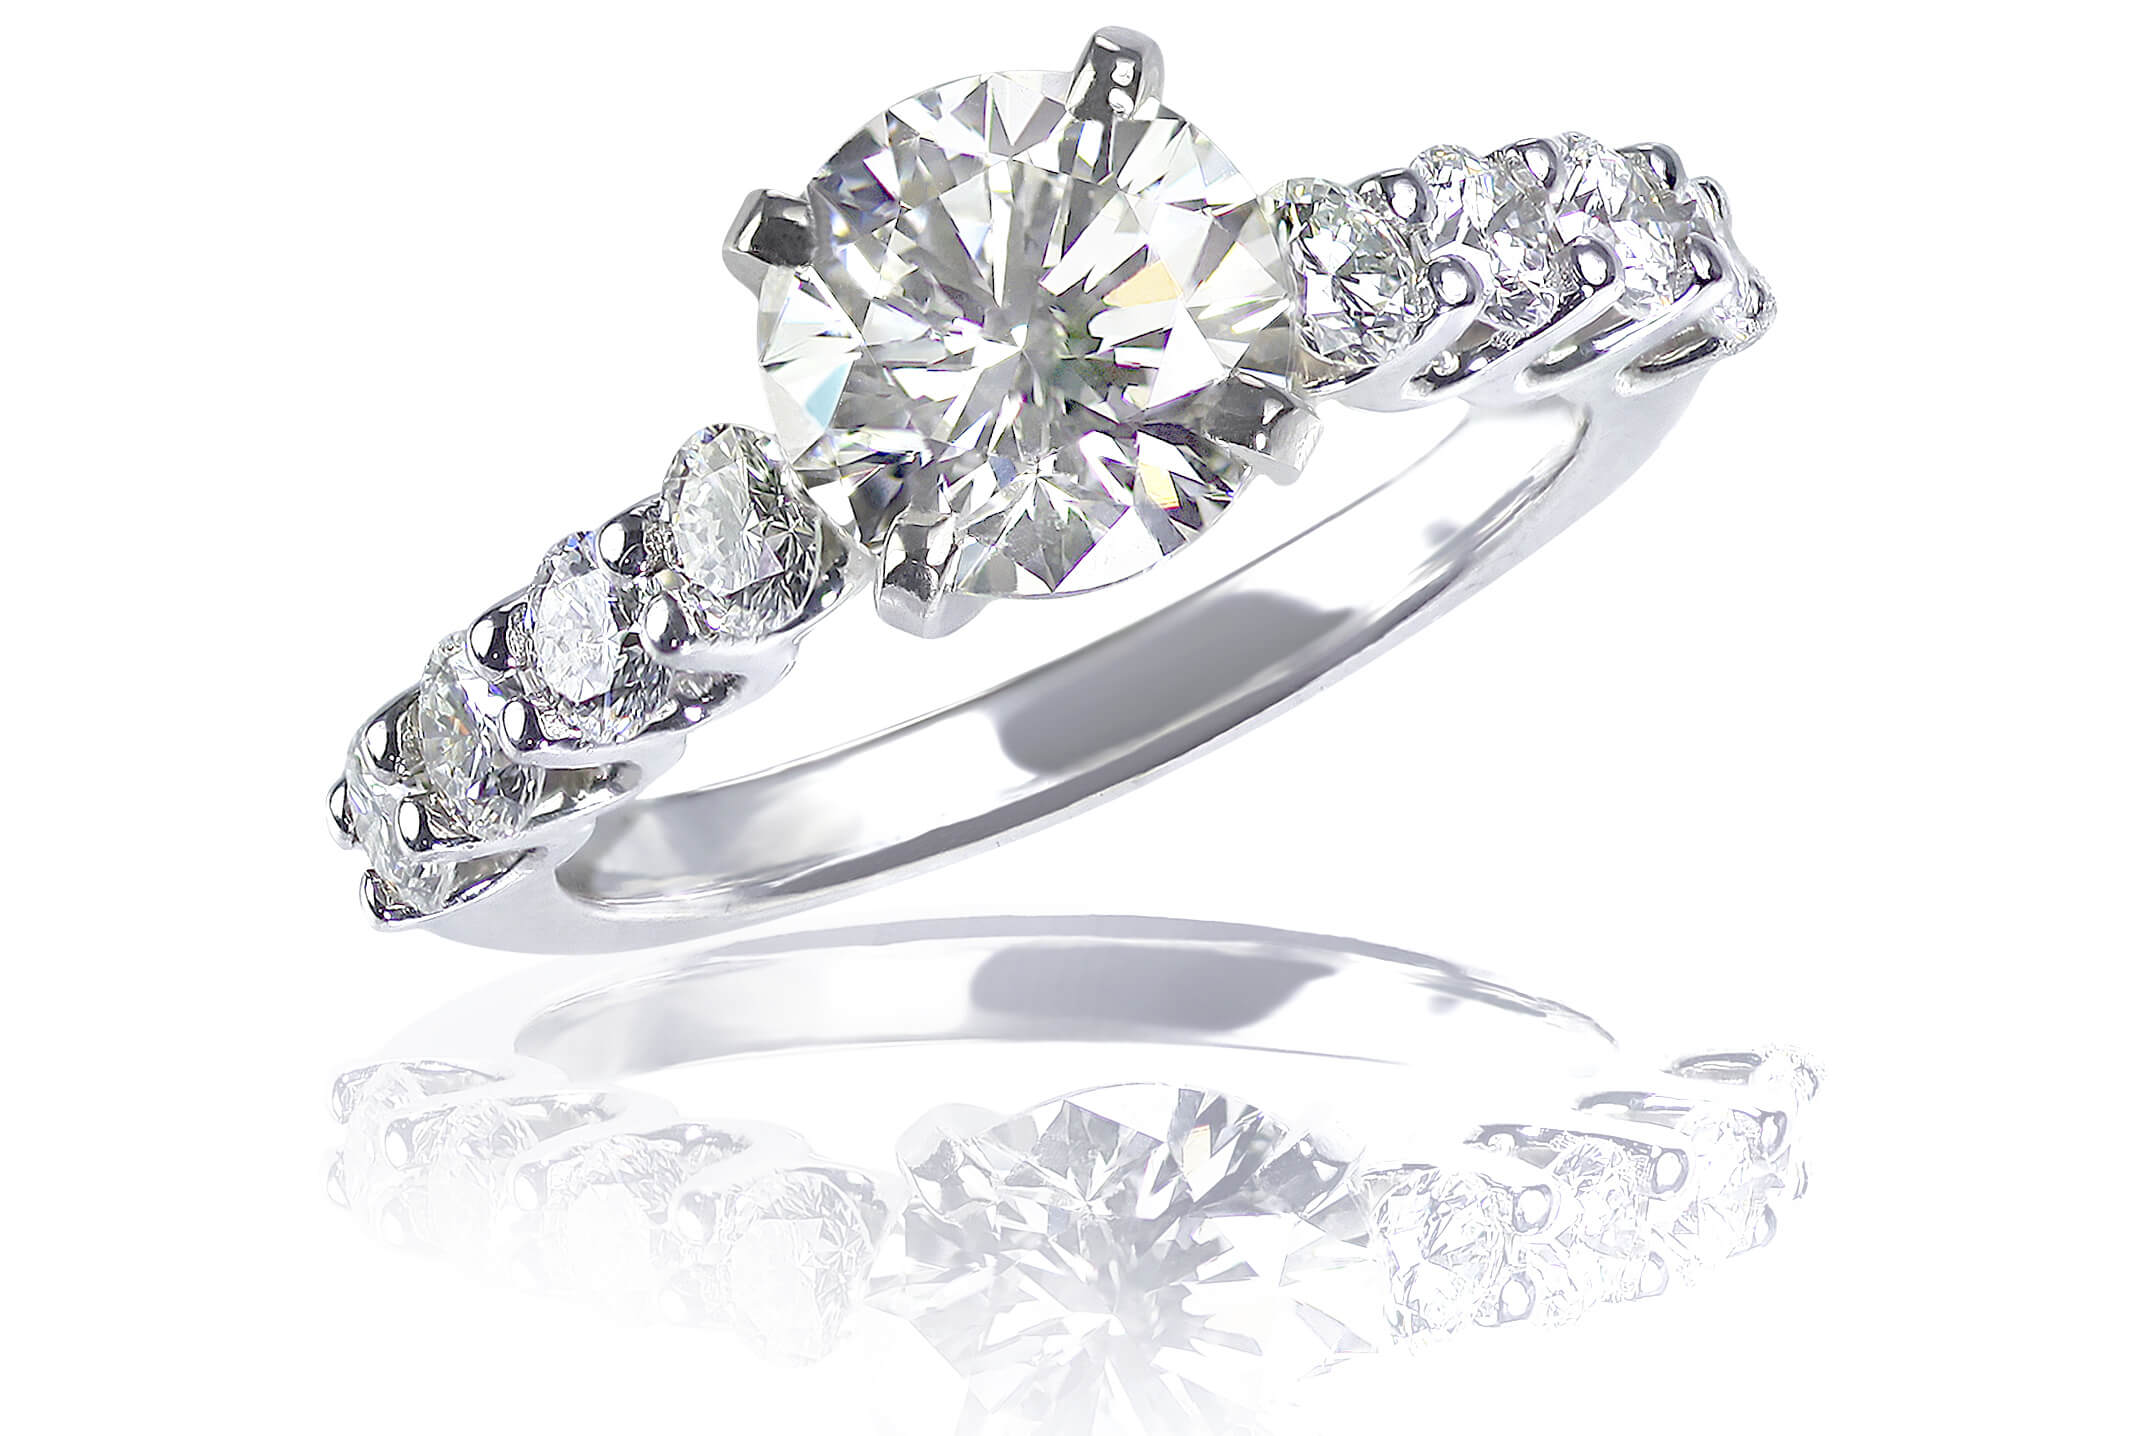 dsc jewellery me styles fine home moissanite and new near toronto moissy stores trends canada store jewelry